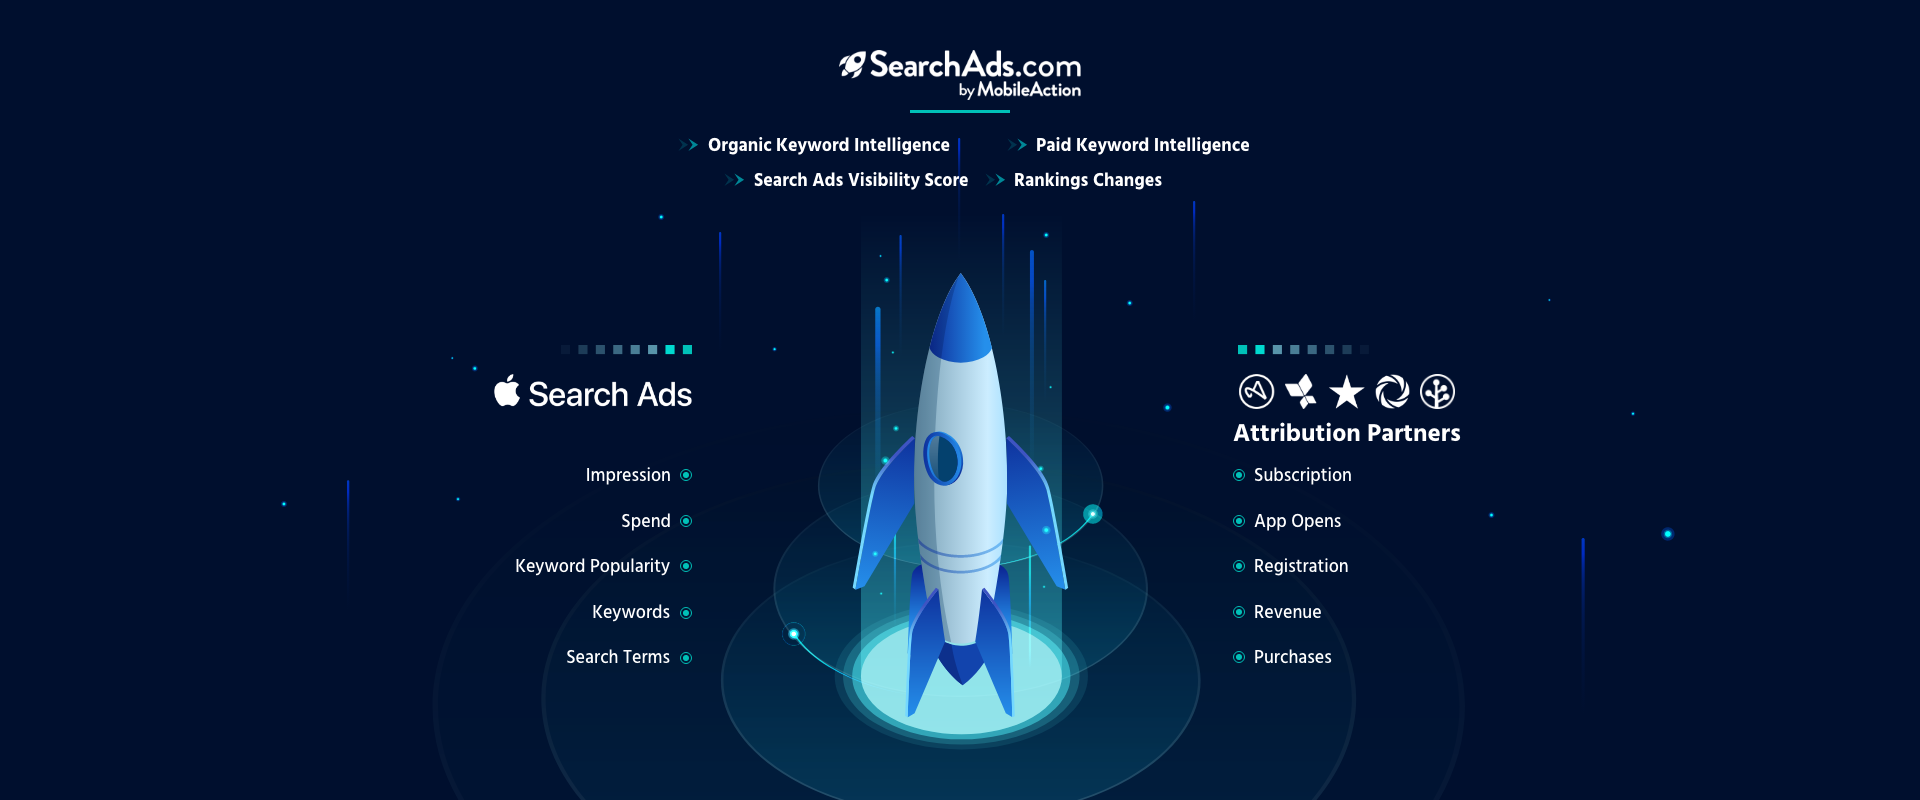 All in one dashboard to scale your ads